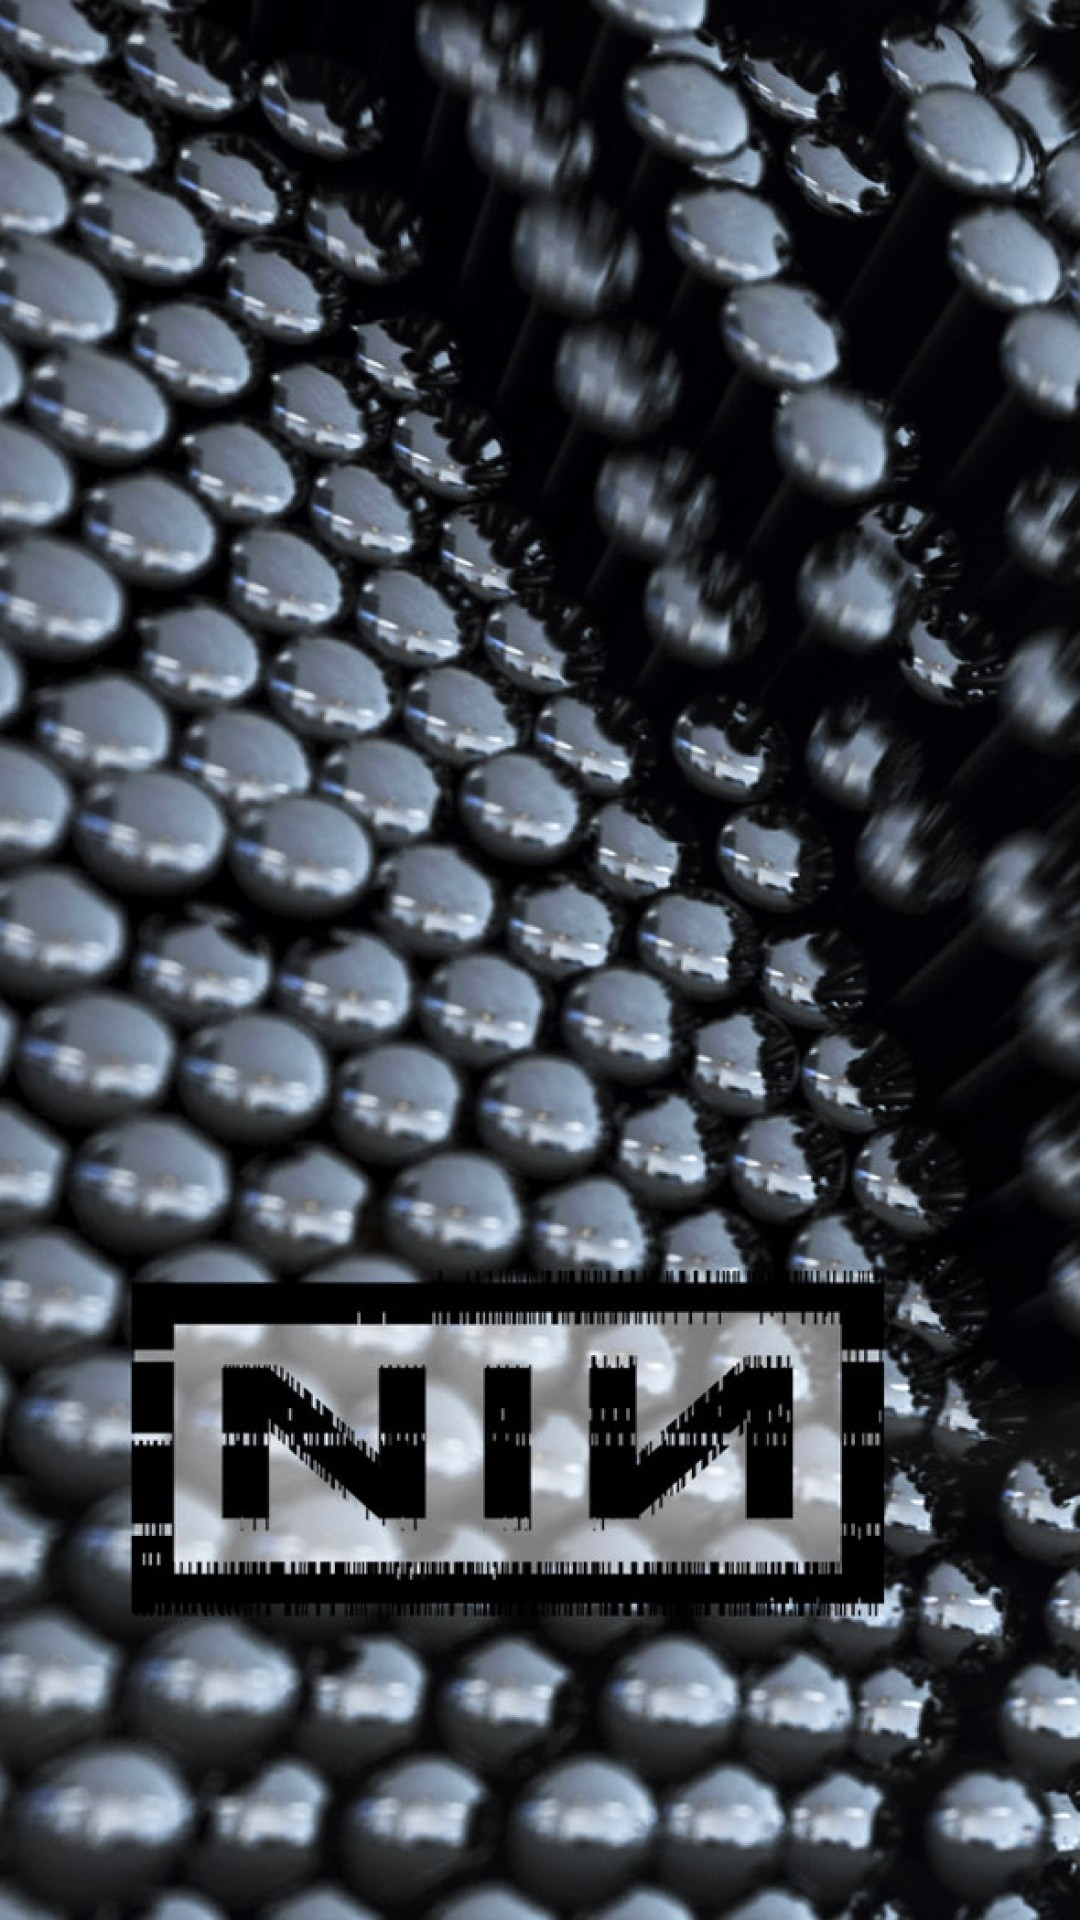 Live Wallpaper Iphone 6s Nine Inch Nails Wallpaper Hd 84 Images